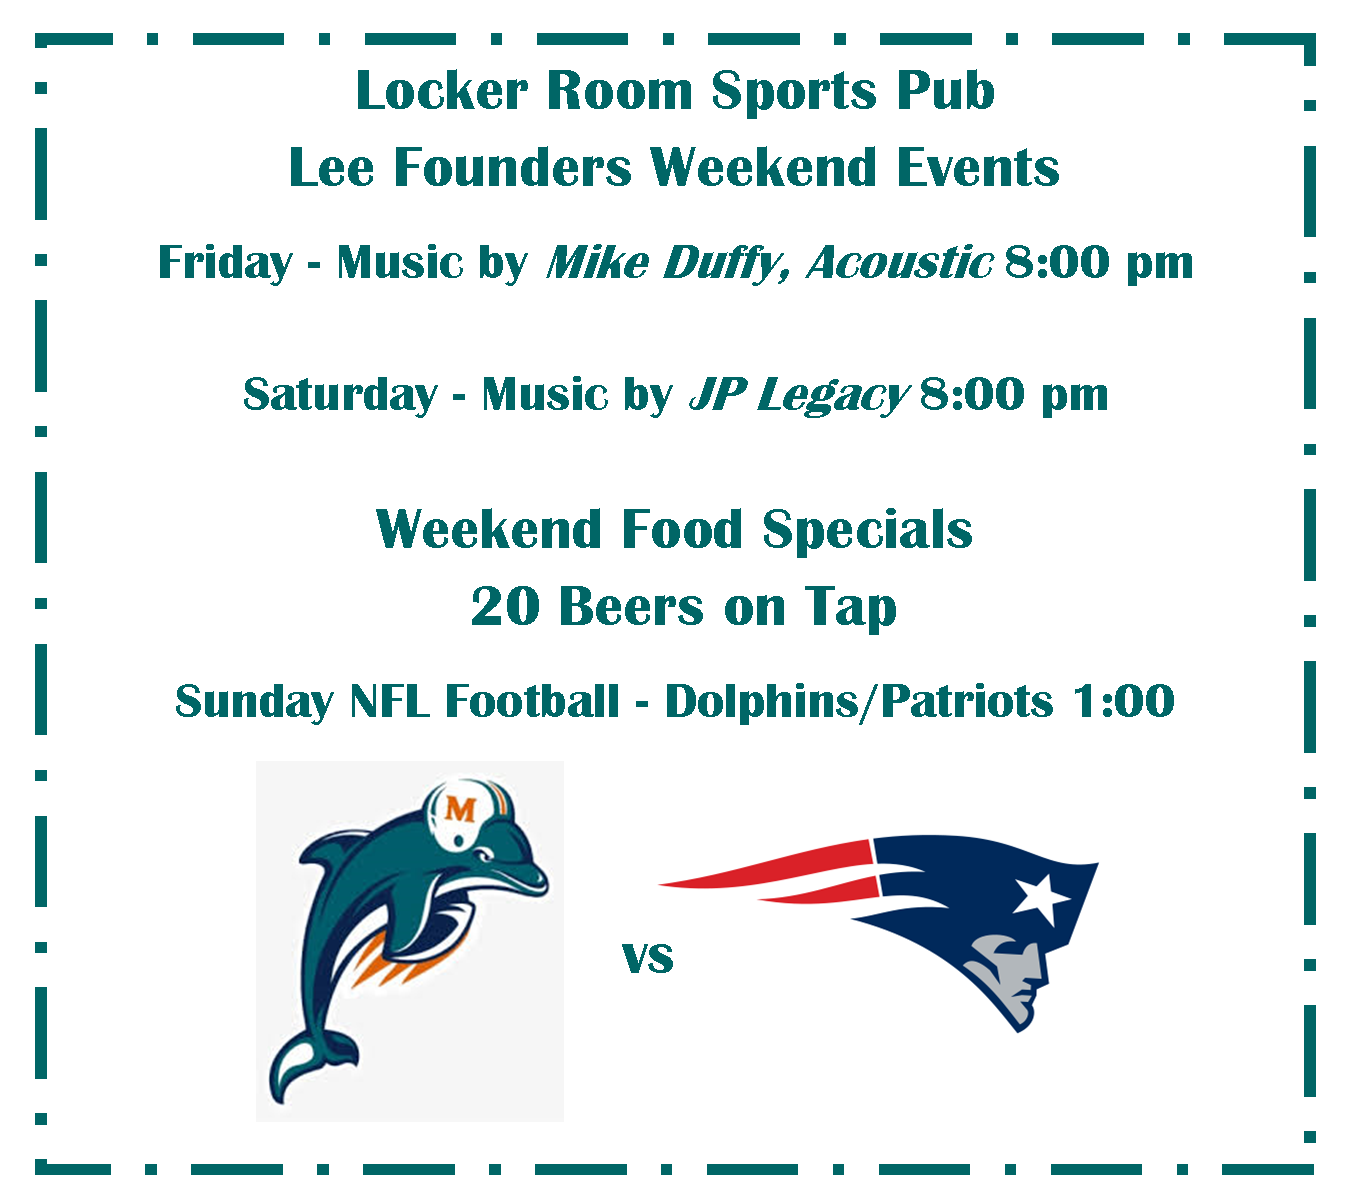 Locker Room Sports Pub Live Music and Specials